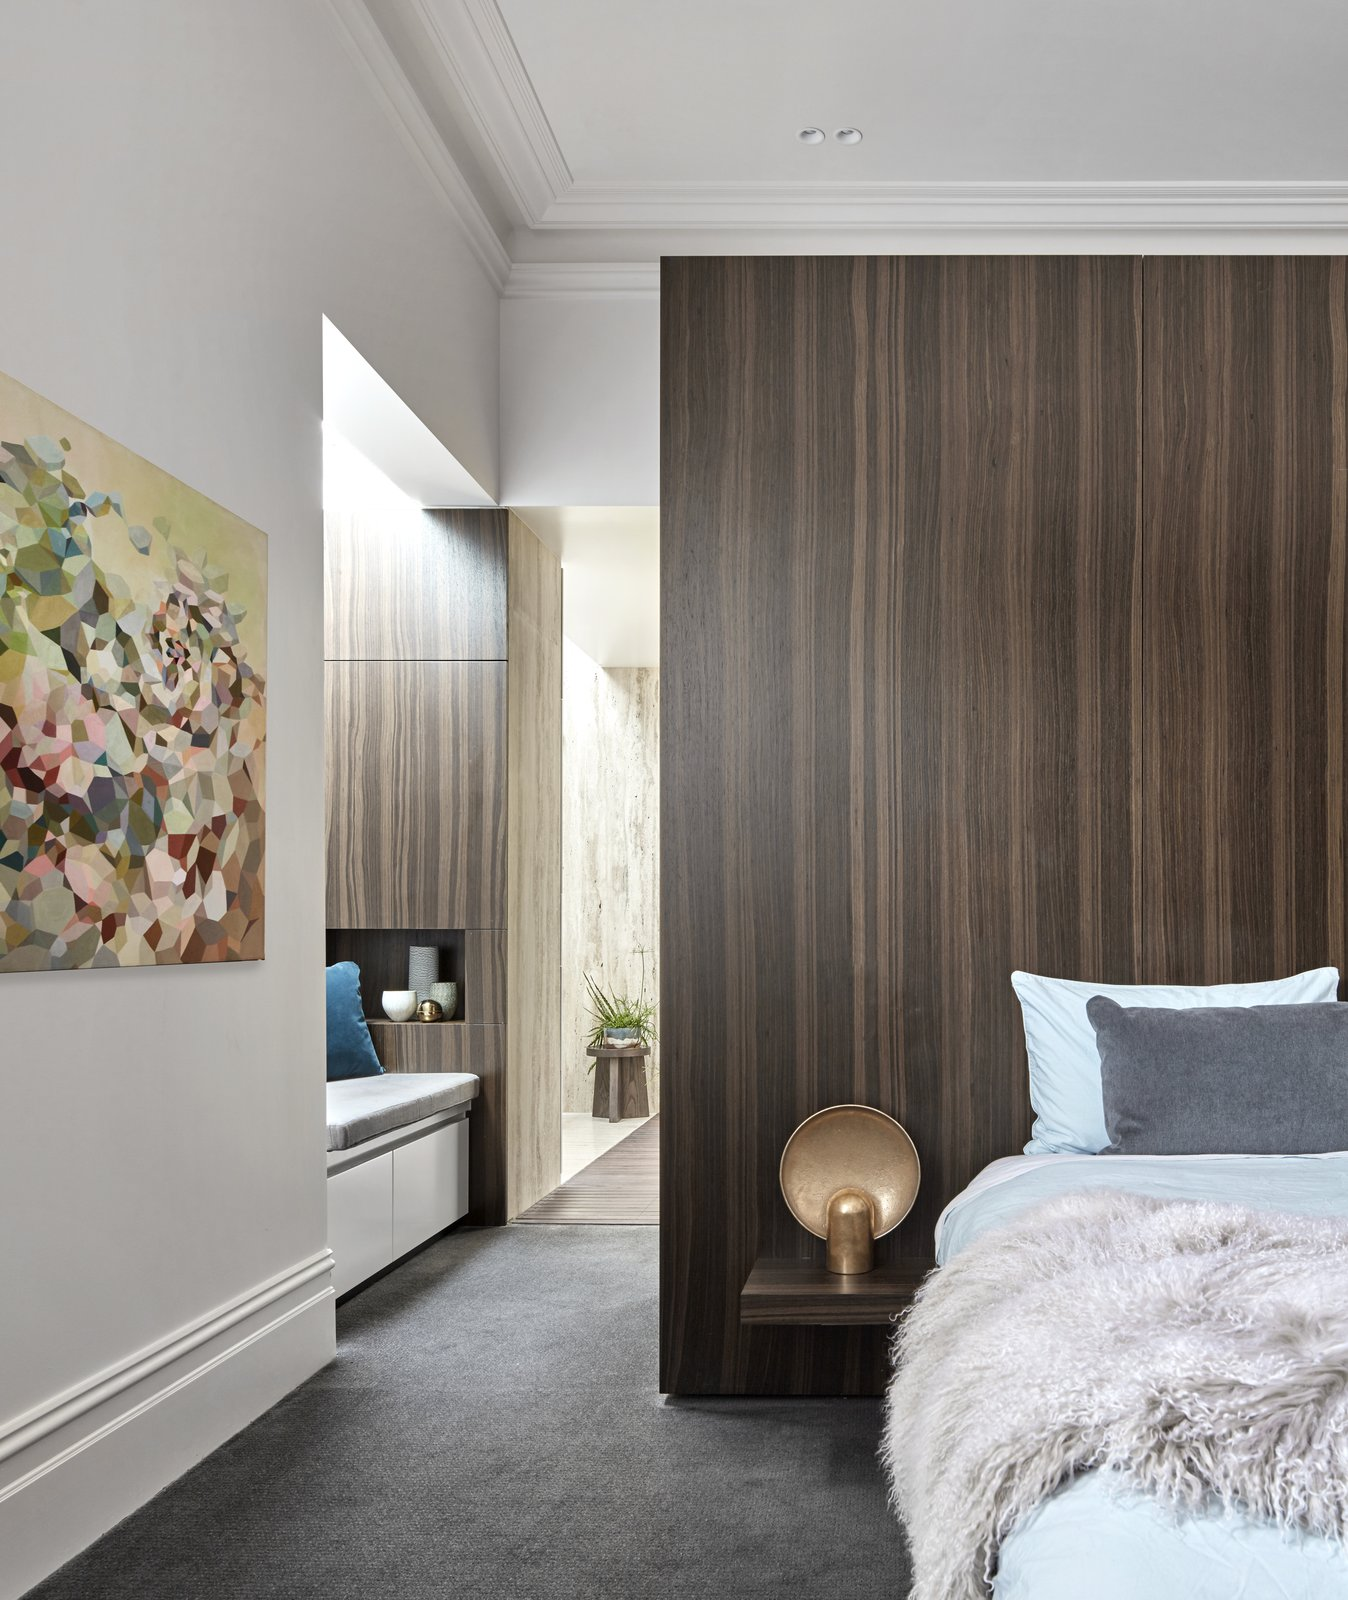 Bedroom, Bed, Night Stands, Carpet, Lamps, Bench, and Recessed Part of the renovation involved creating a master bedroom suite.  Best Bedroom Recessed Bench Night Stands Photos from Courtyards Maximize Sunlight in This Renovated Australian Abode